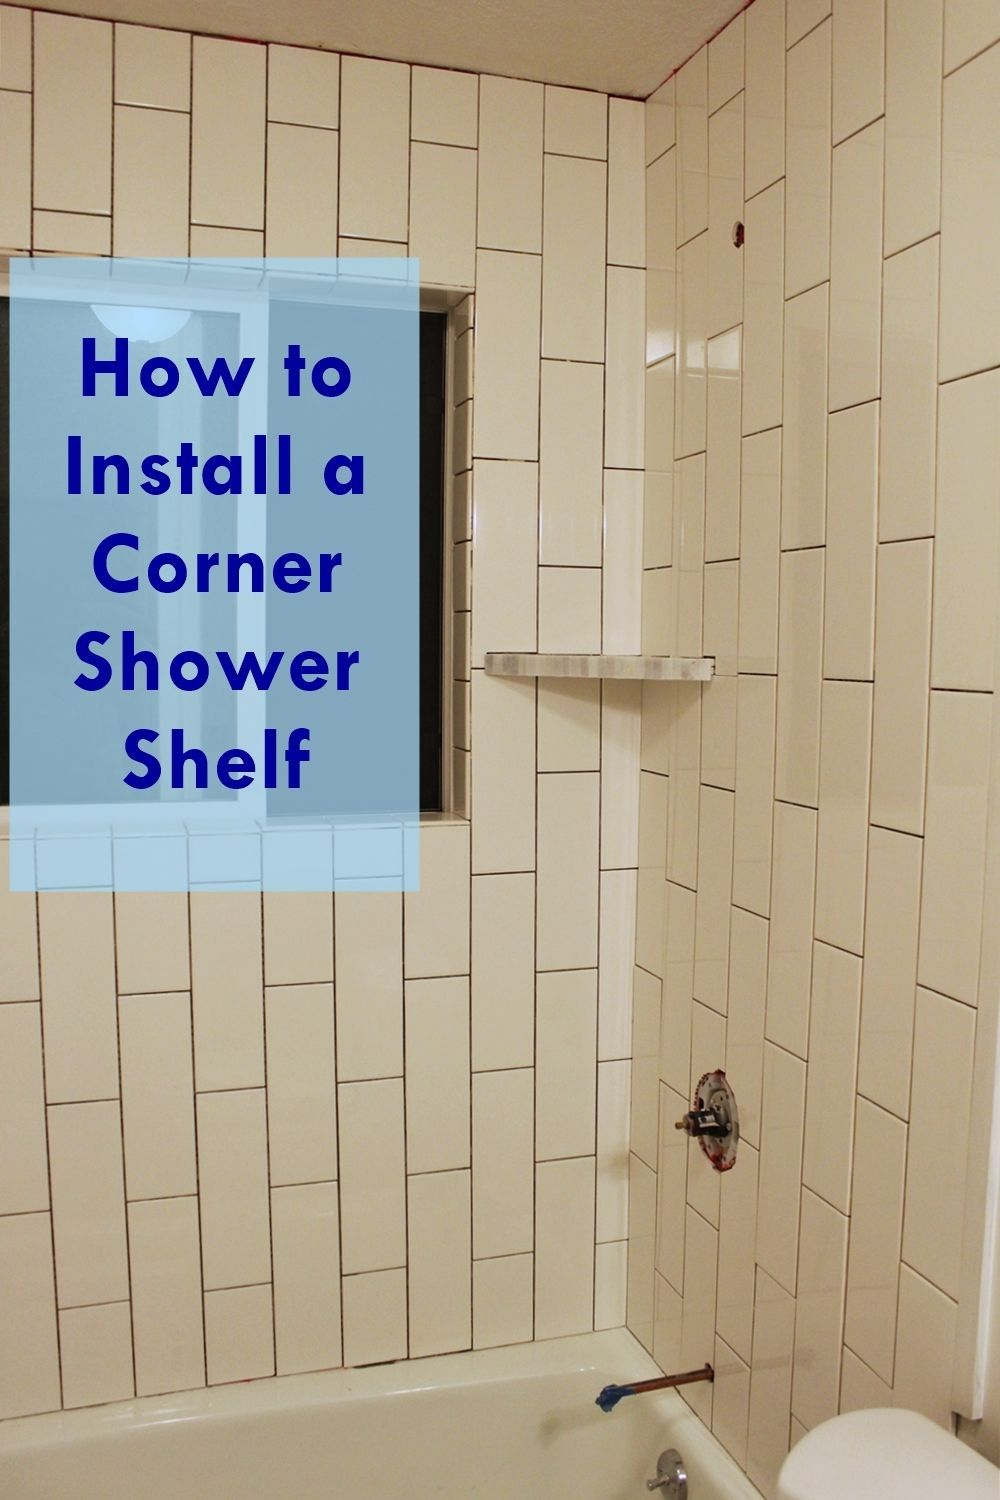 Diy bathroom tile - Diy Bathroom Tile 19